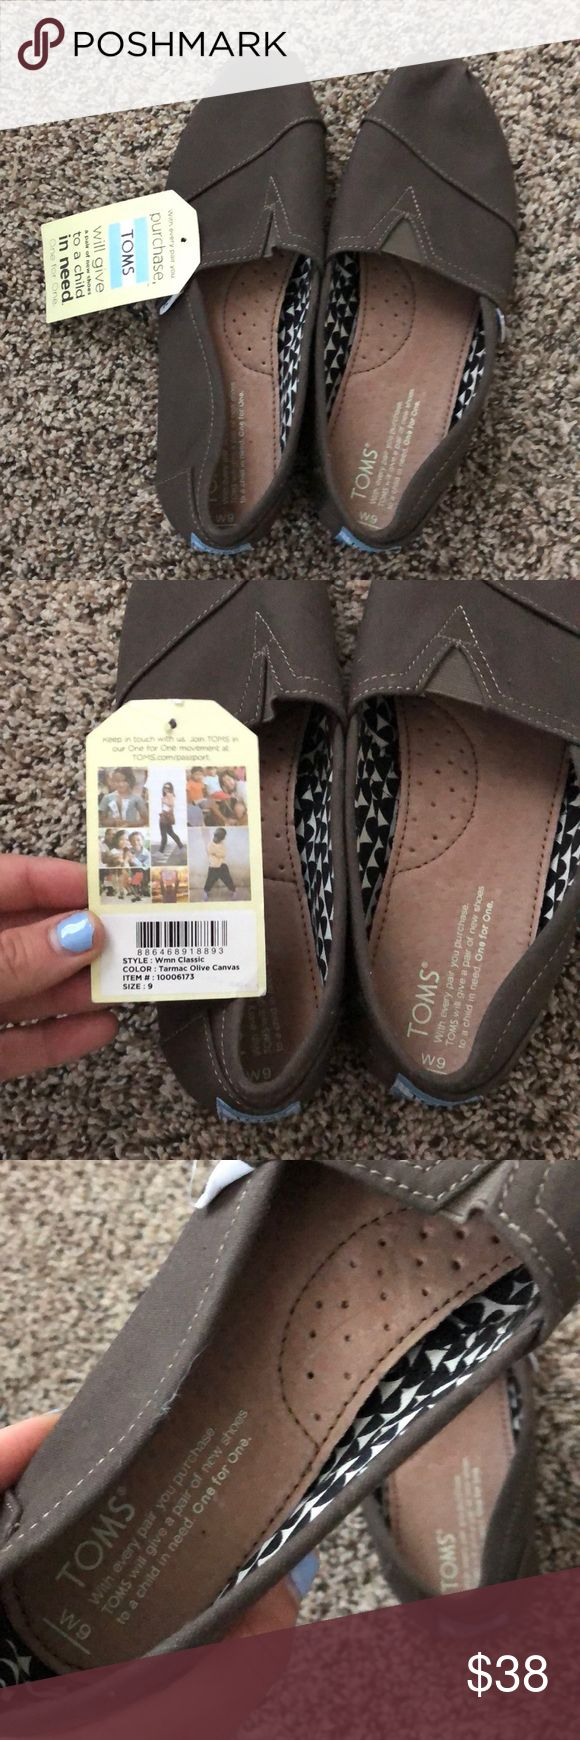 """BRAND NEW never worn Women's Olive Green Toms BRAND NEW with tags, never worn, Women's Size 9 Olive Green Toms. Had to repost because previous buyer """"accidentally"""" purchased...They were never sent out to her, still remain unworn. they are in great condition and fit true to size, I just received the wrong size as a gift! Willing to negotiate a reasonable price, keep in mind poshmark takes money for shipping! Toms Shoes Flats & Loafers"""